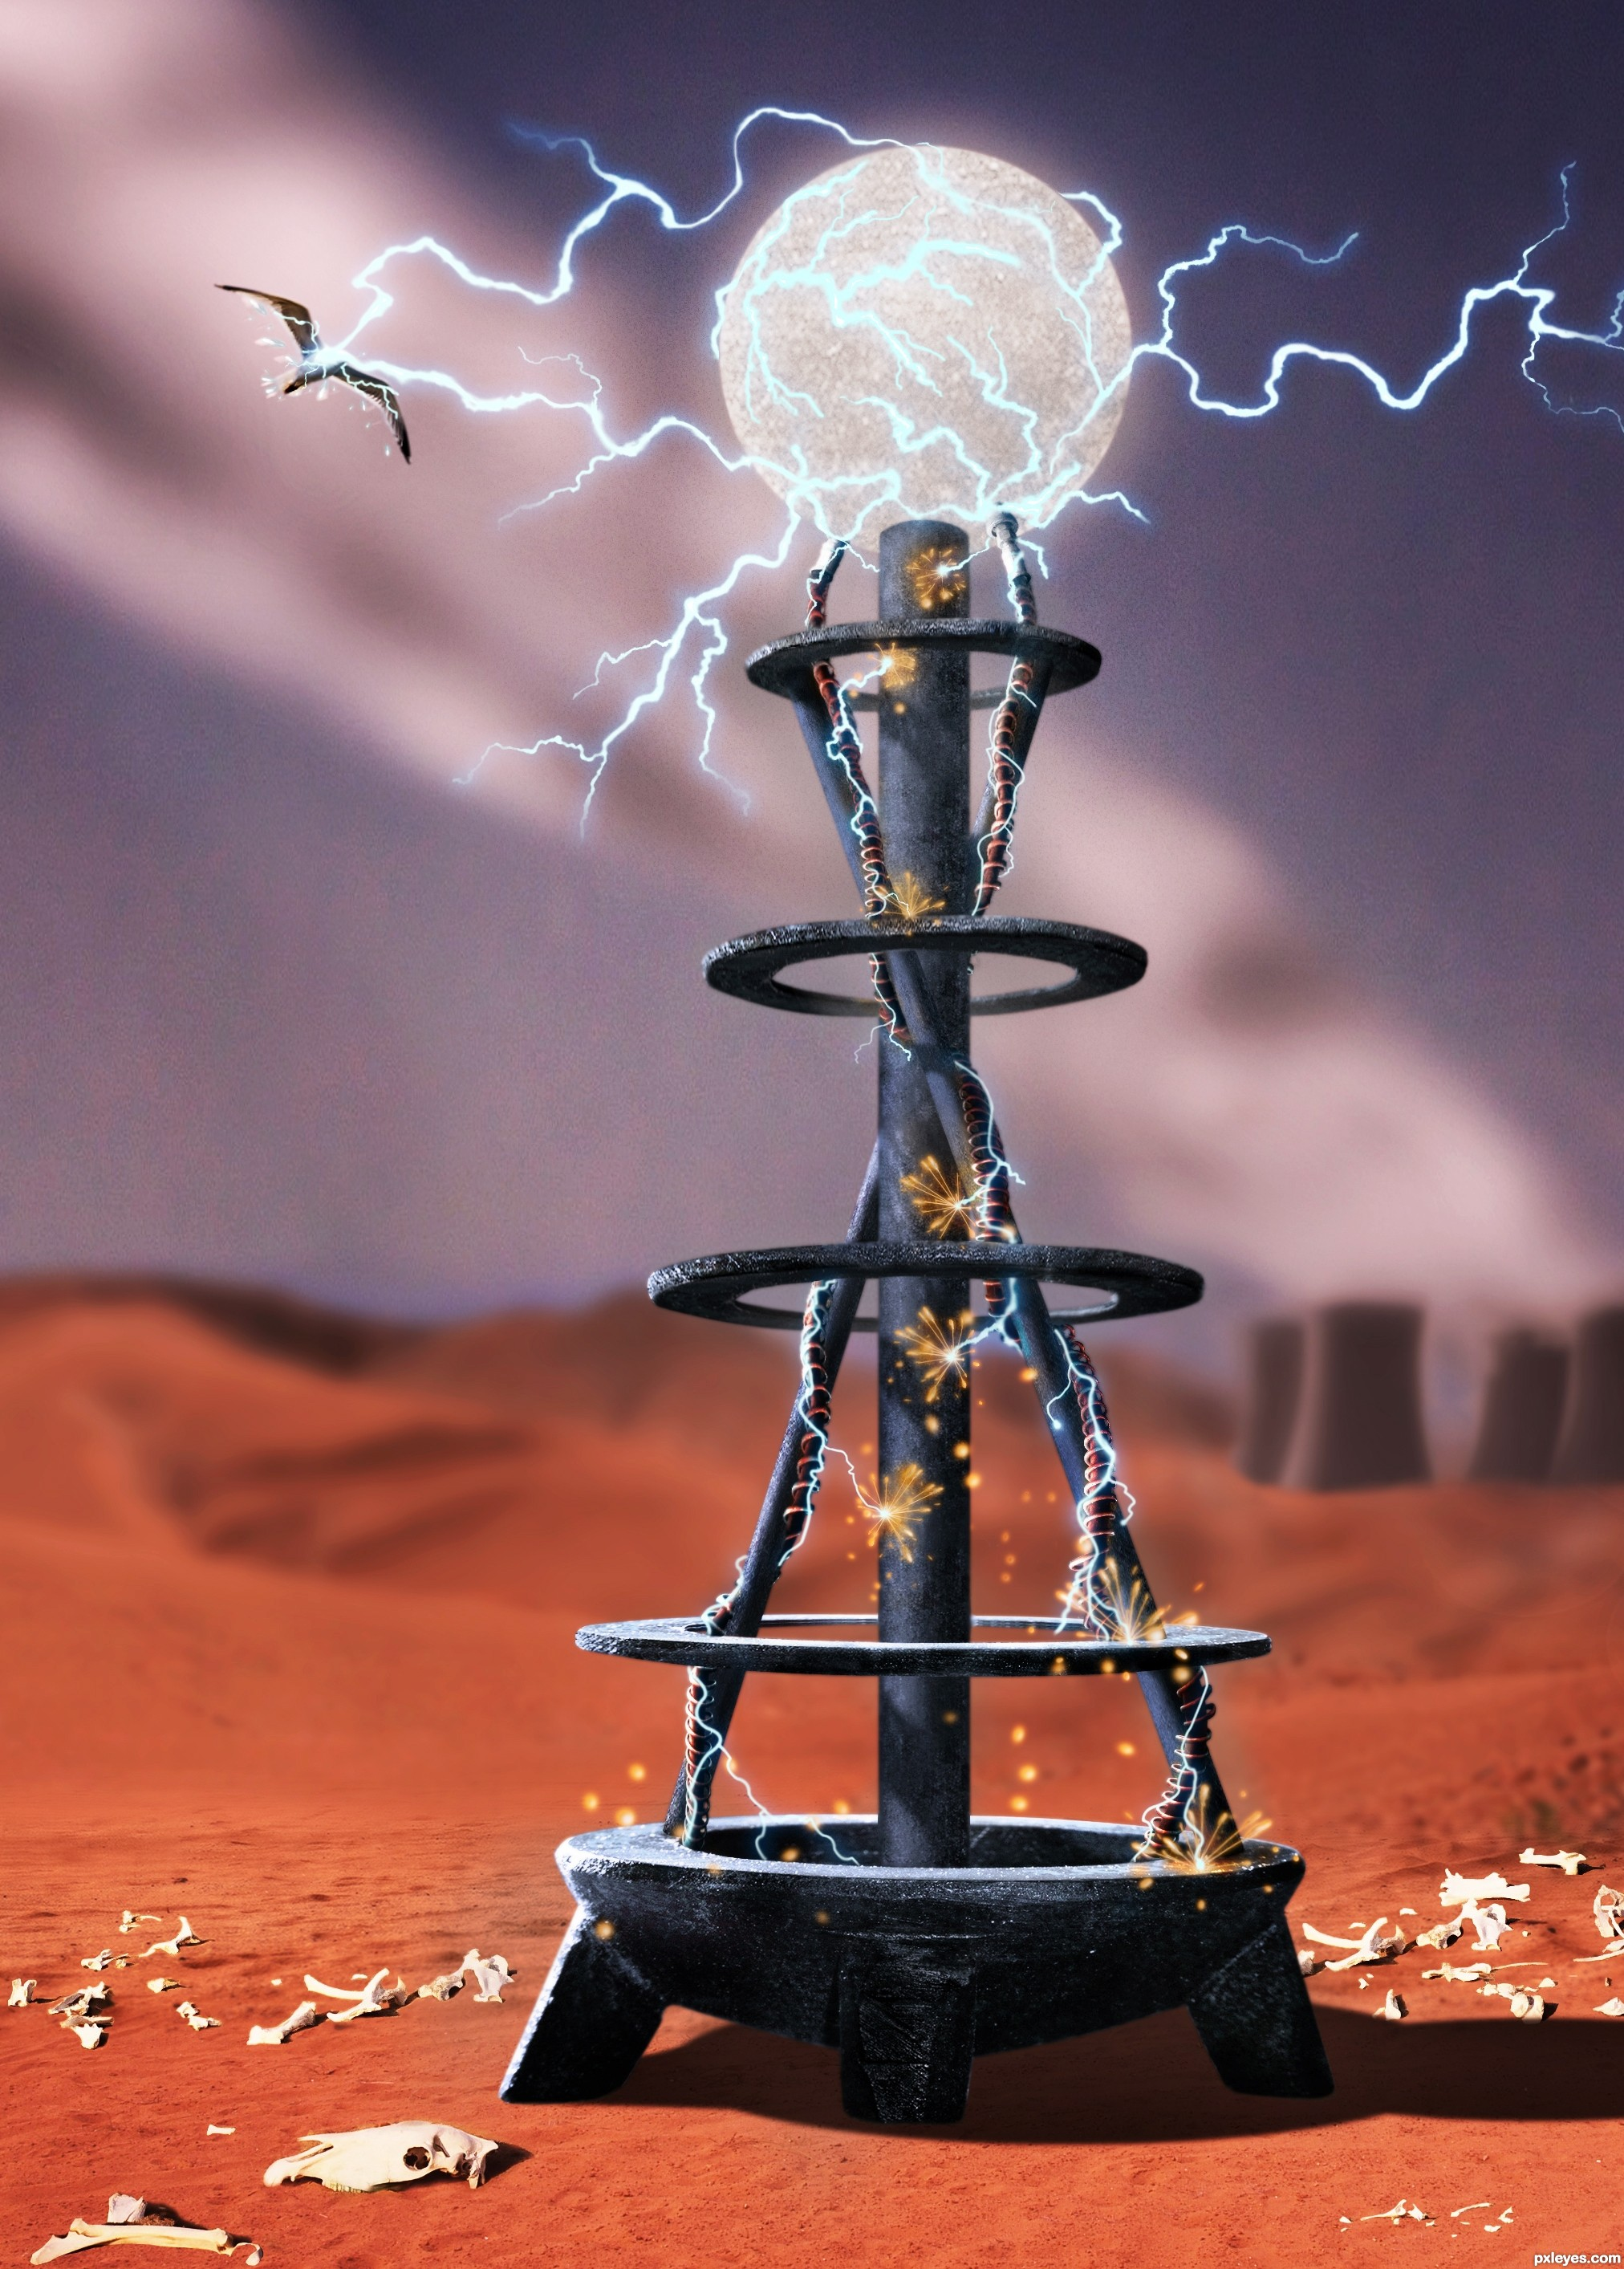 Tesla Coil picture, by greymval for: kavia bowl photoshop contest.